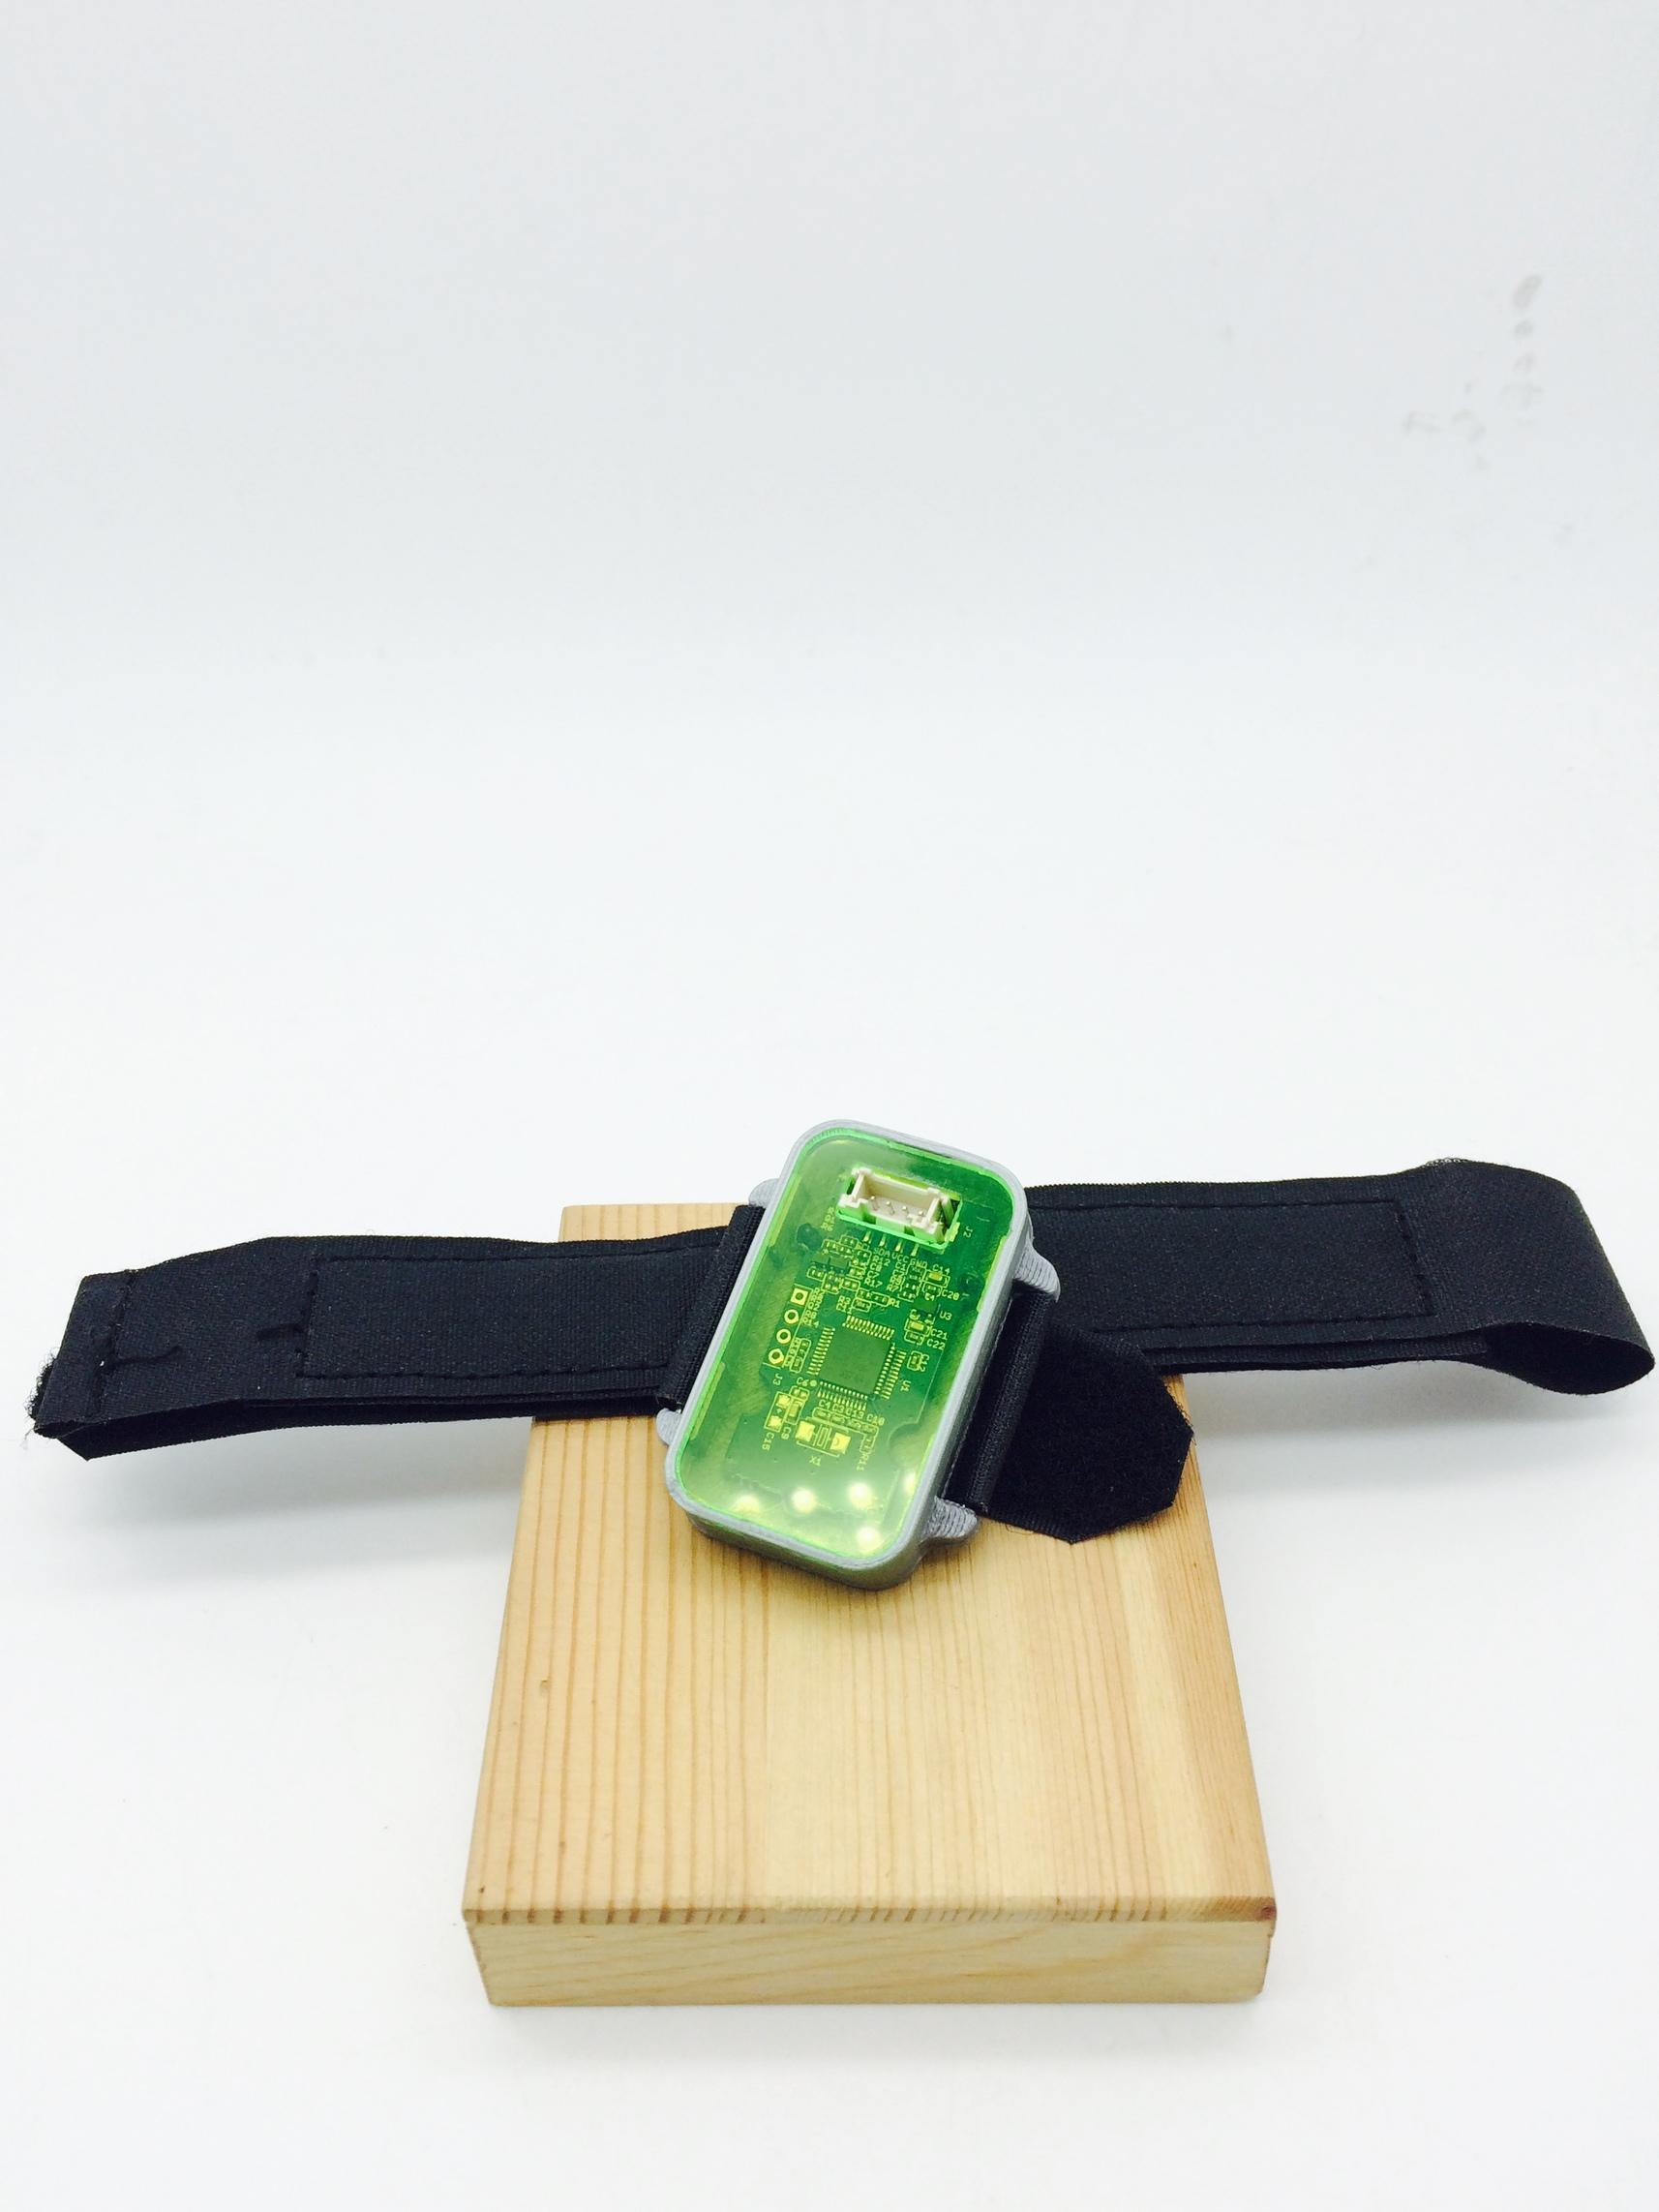 Grove Finger Clip Heart Rate Sensor With Shell